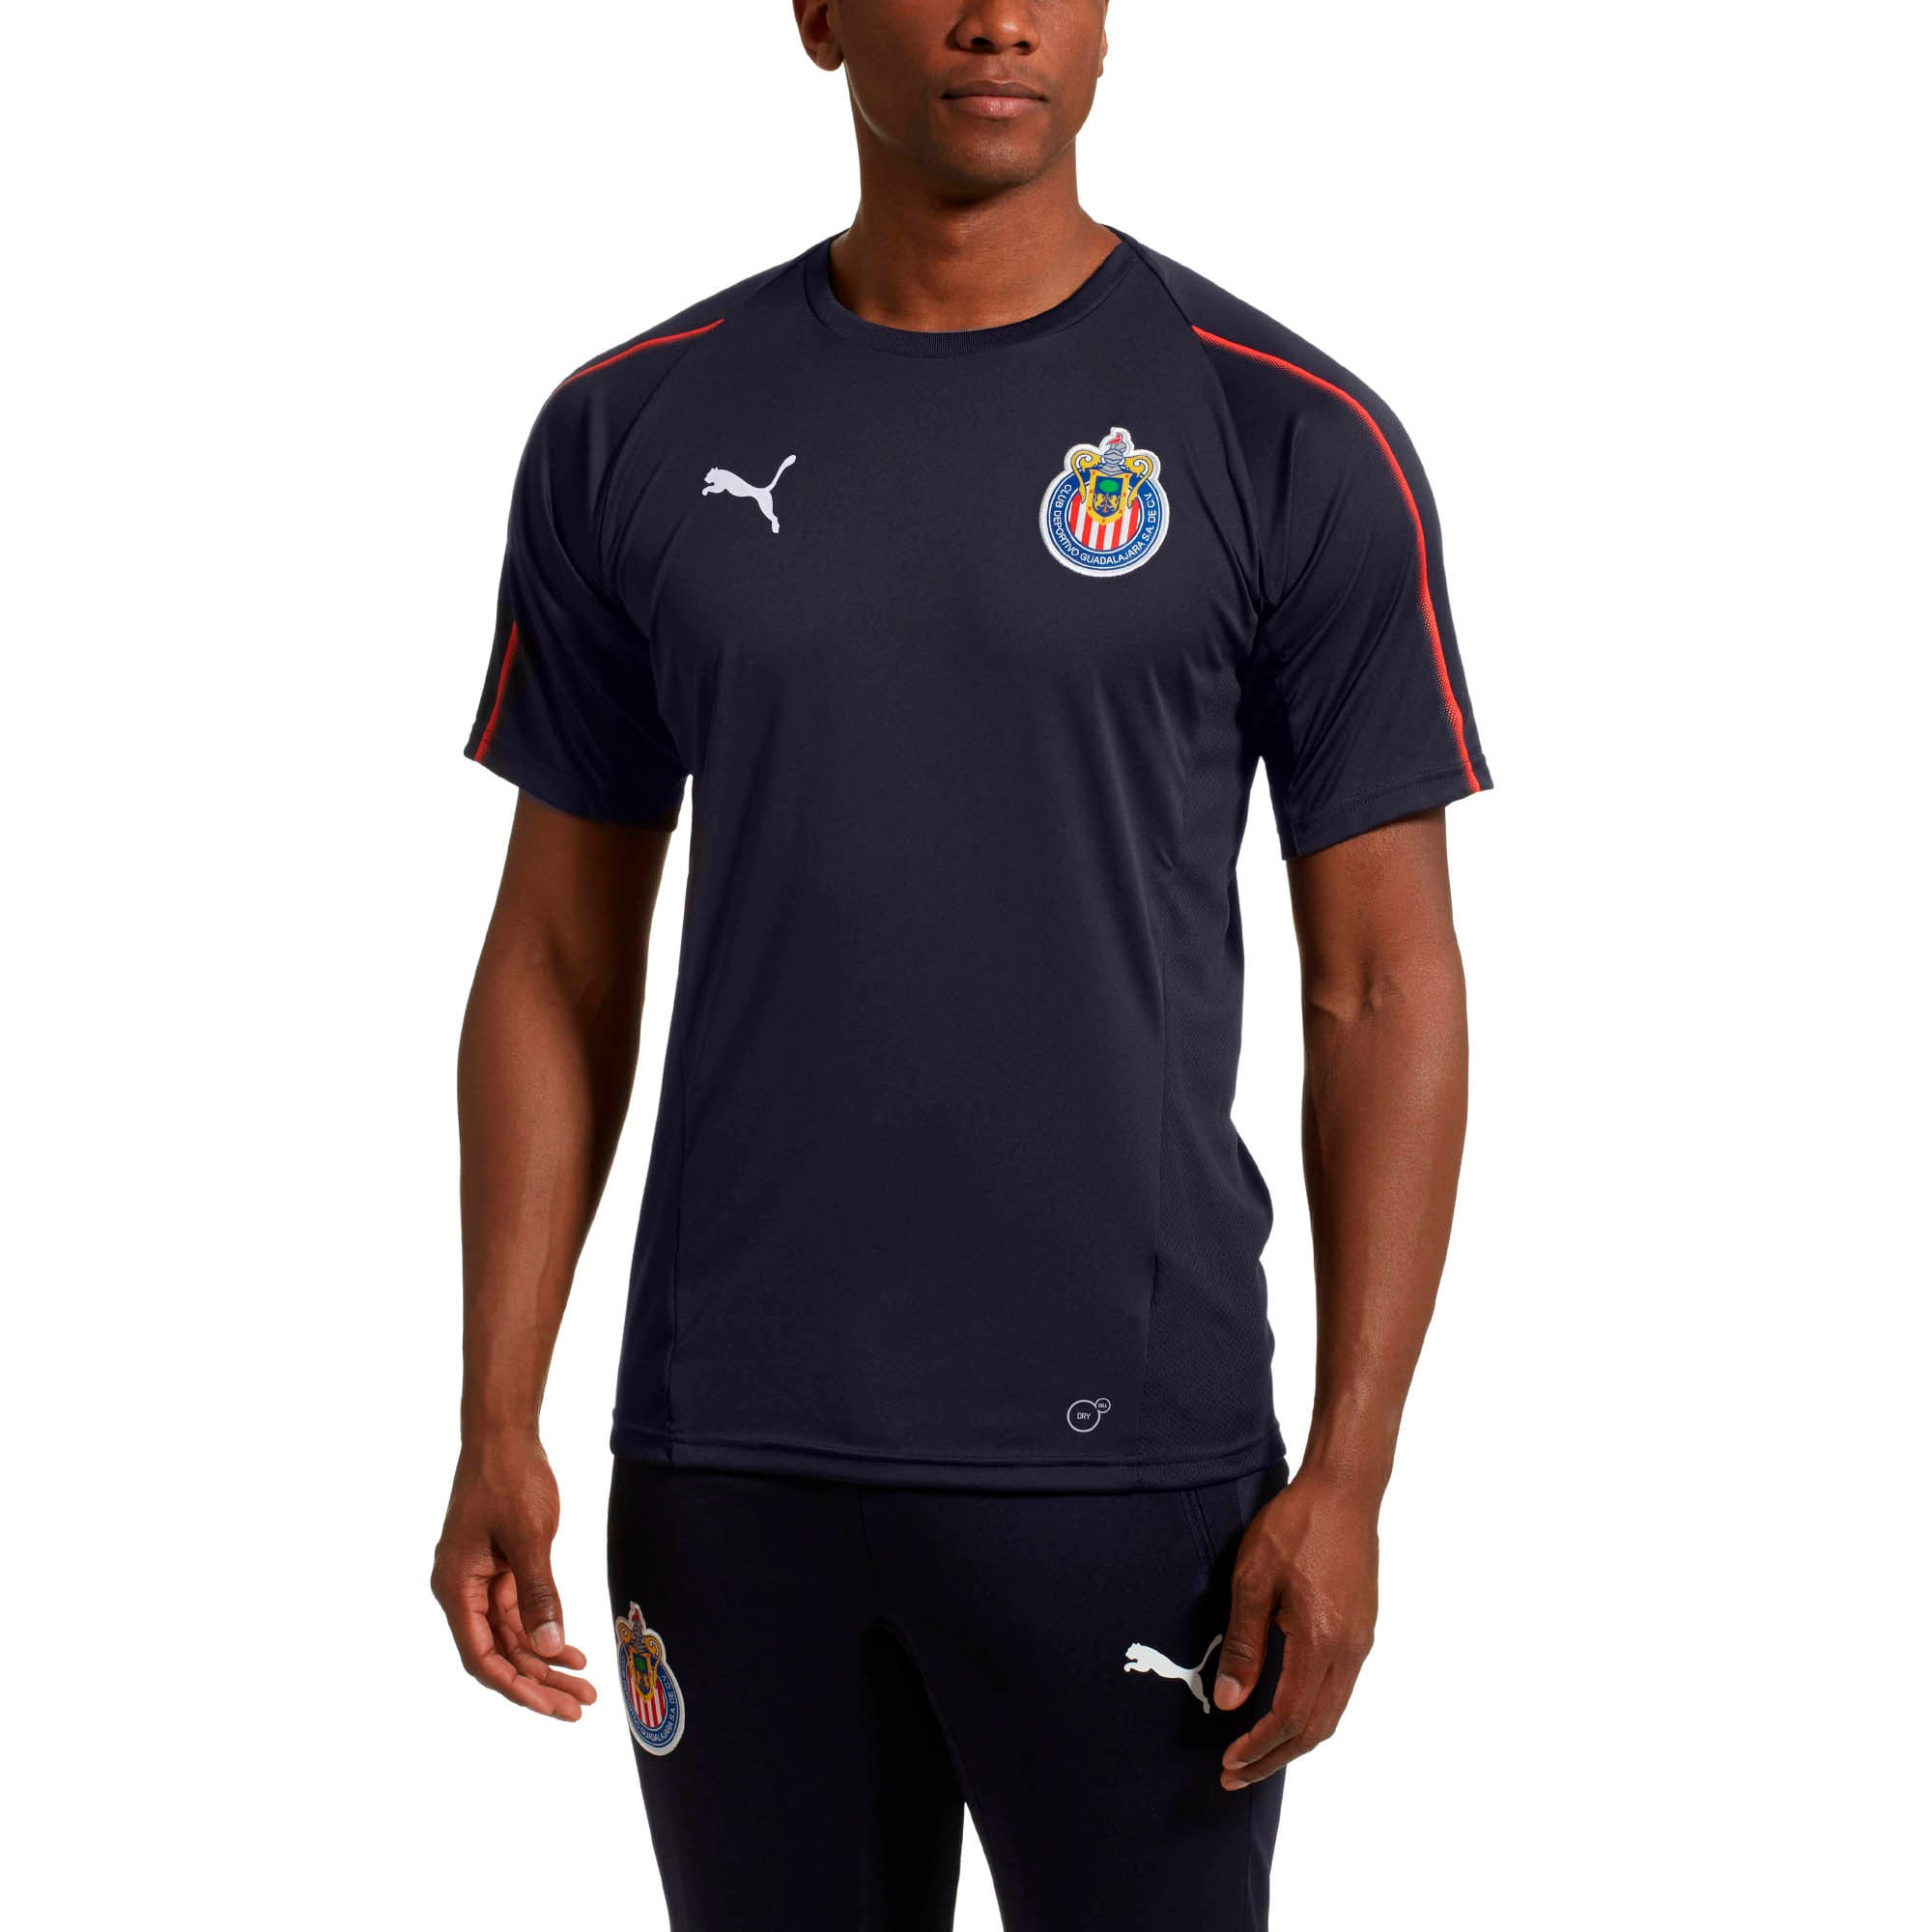 on sale c3bed 7f2f6 Chivas Training Jersey